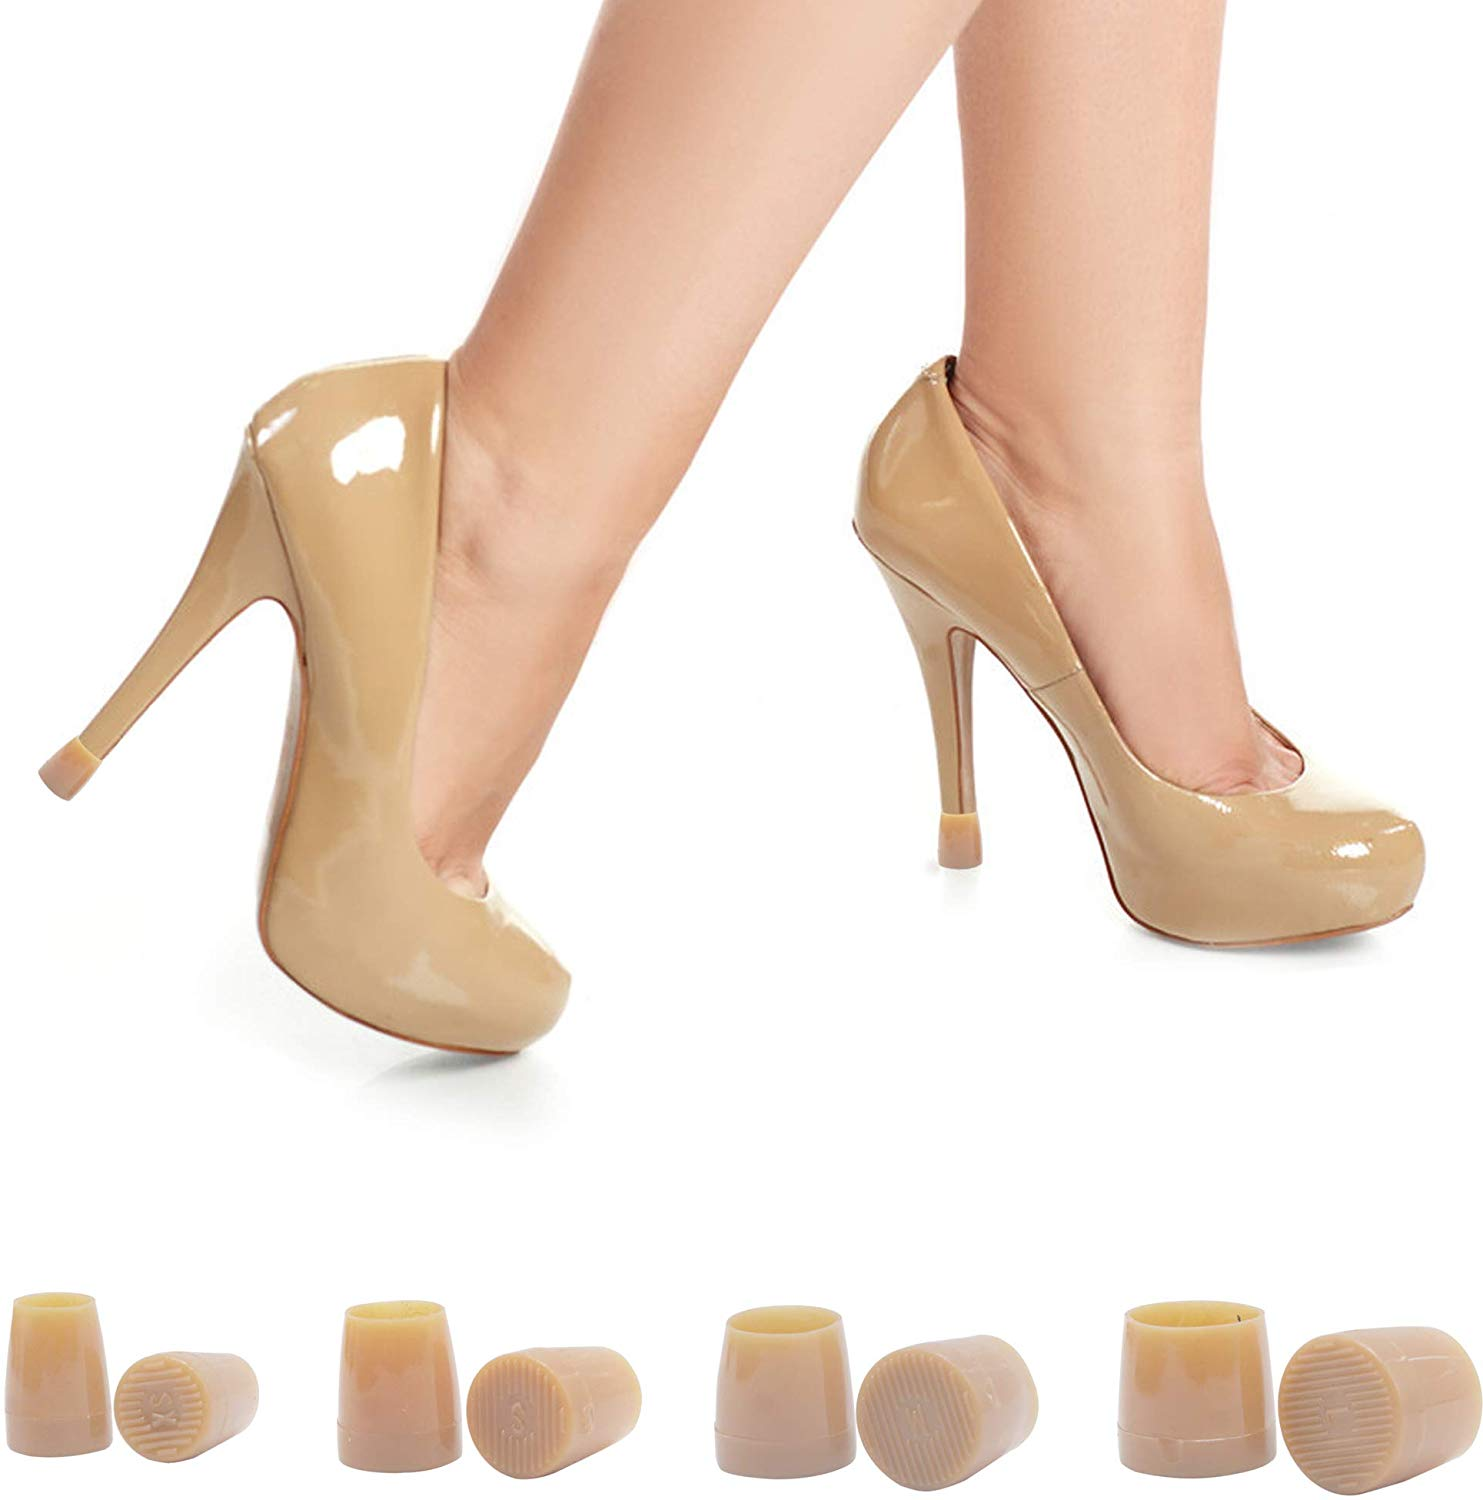 50% Off - High Heel Protector for Women's Shoes